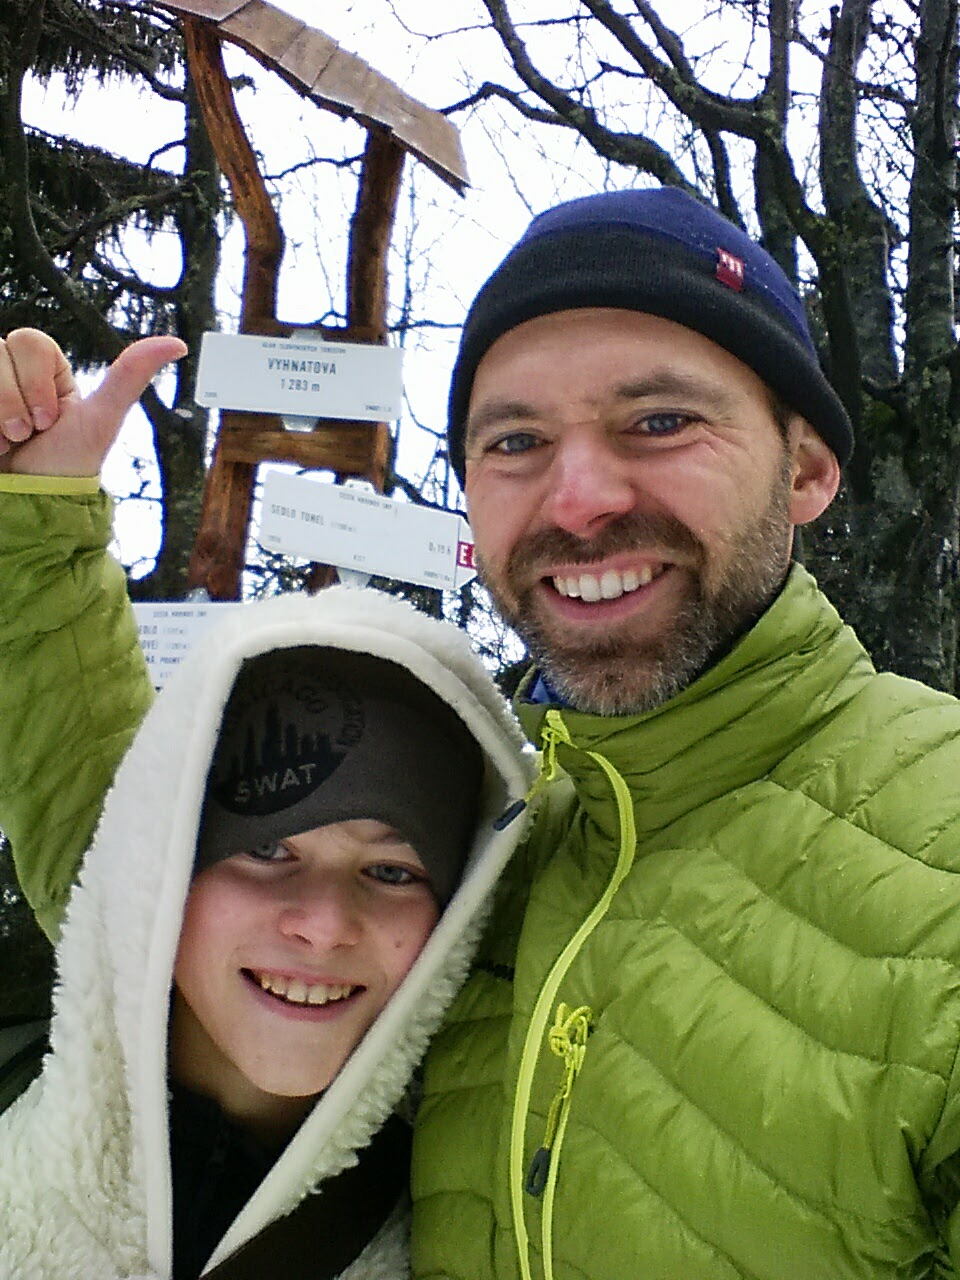 Father son hike up Vyhnatova on November 1 with lots of snow. 1283 meters above sea level.